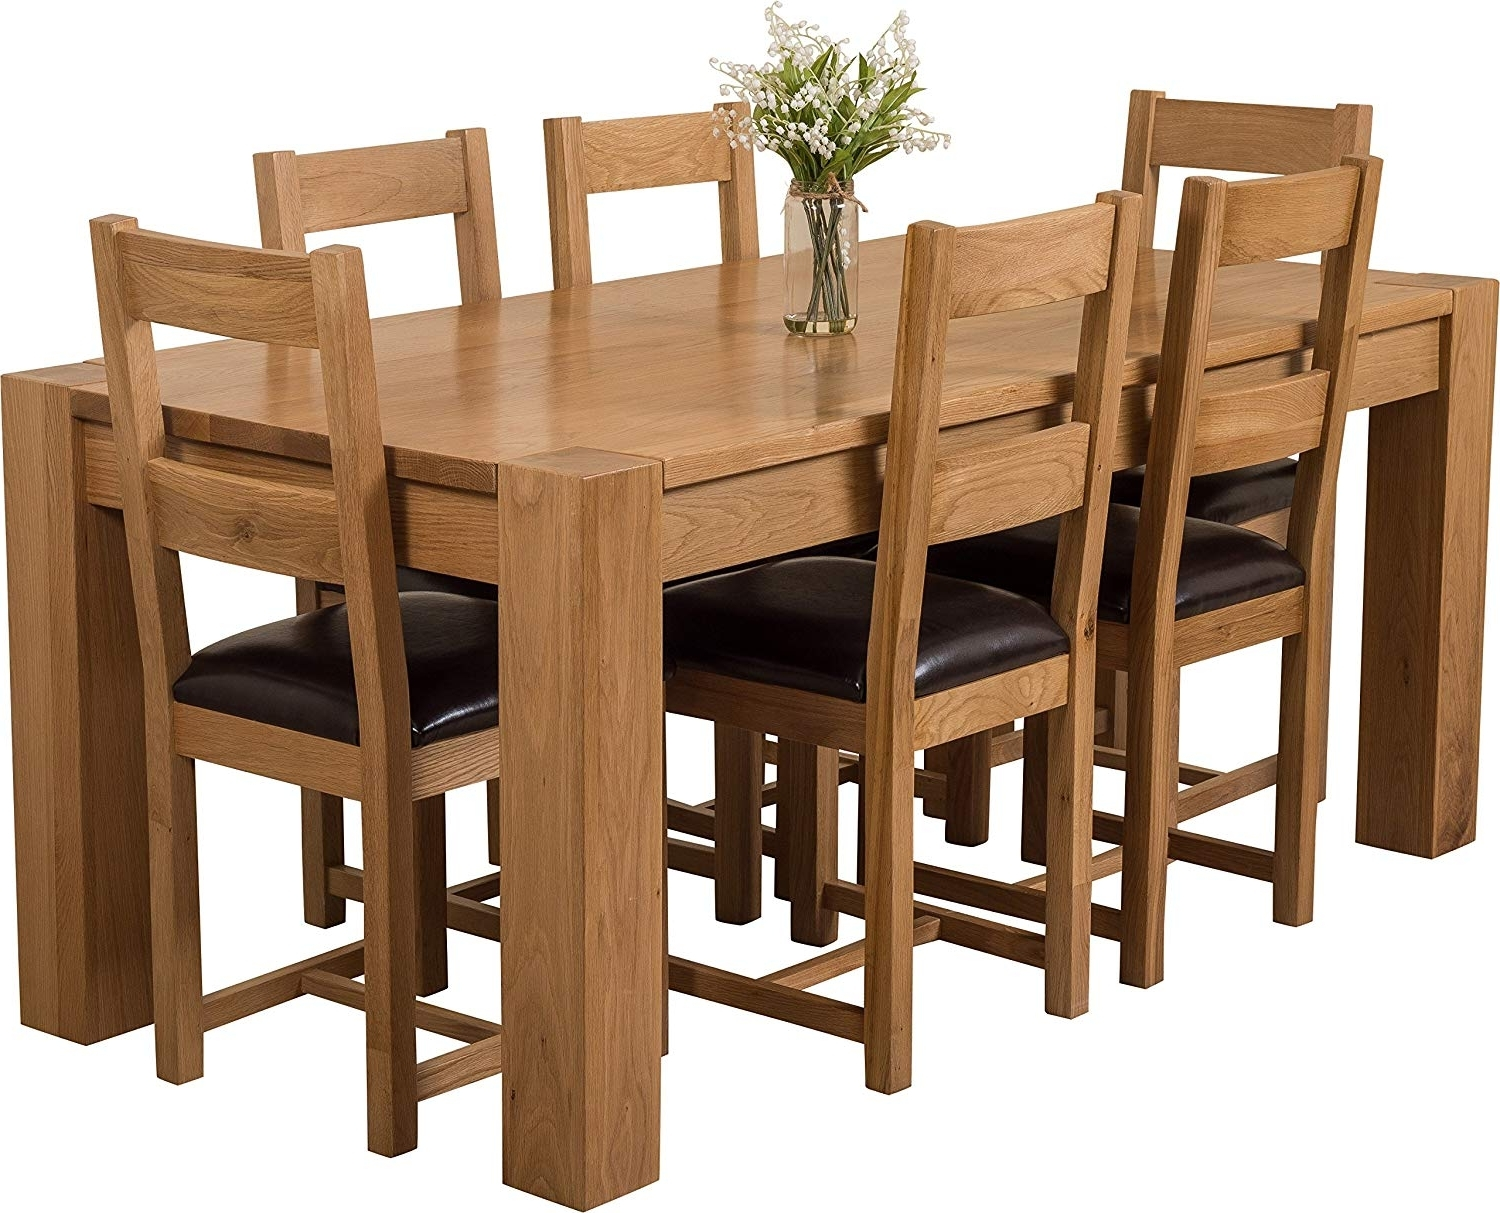 Trendy Hermosa Kensington Dining Table With 6 Chairs With Clear Lacquer In Oak Dining Tables With 6 Chairs (View 20 of 25)